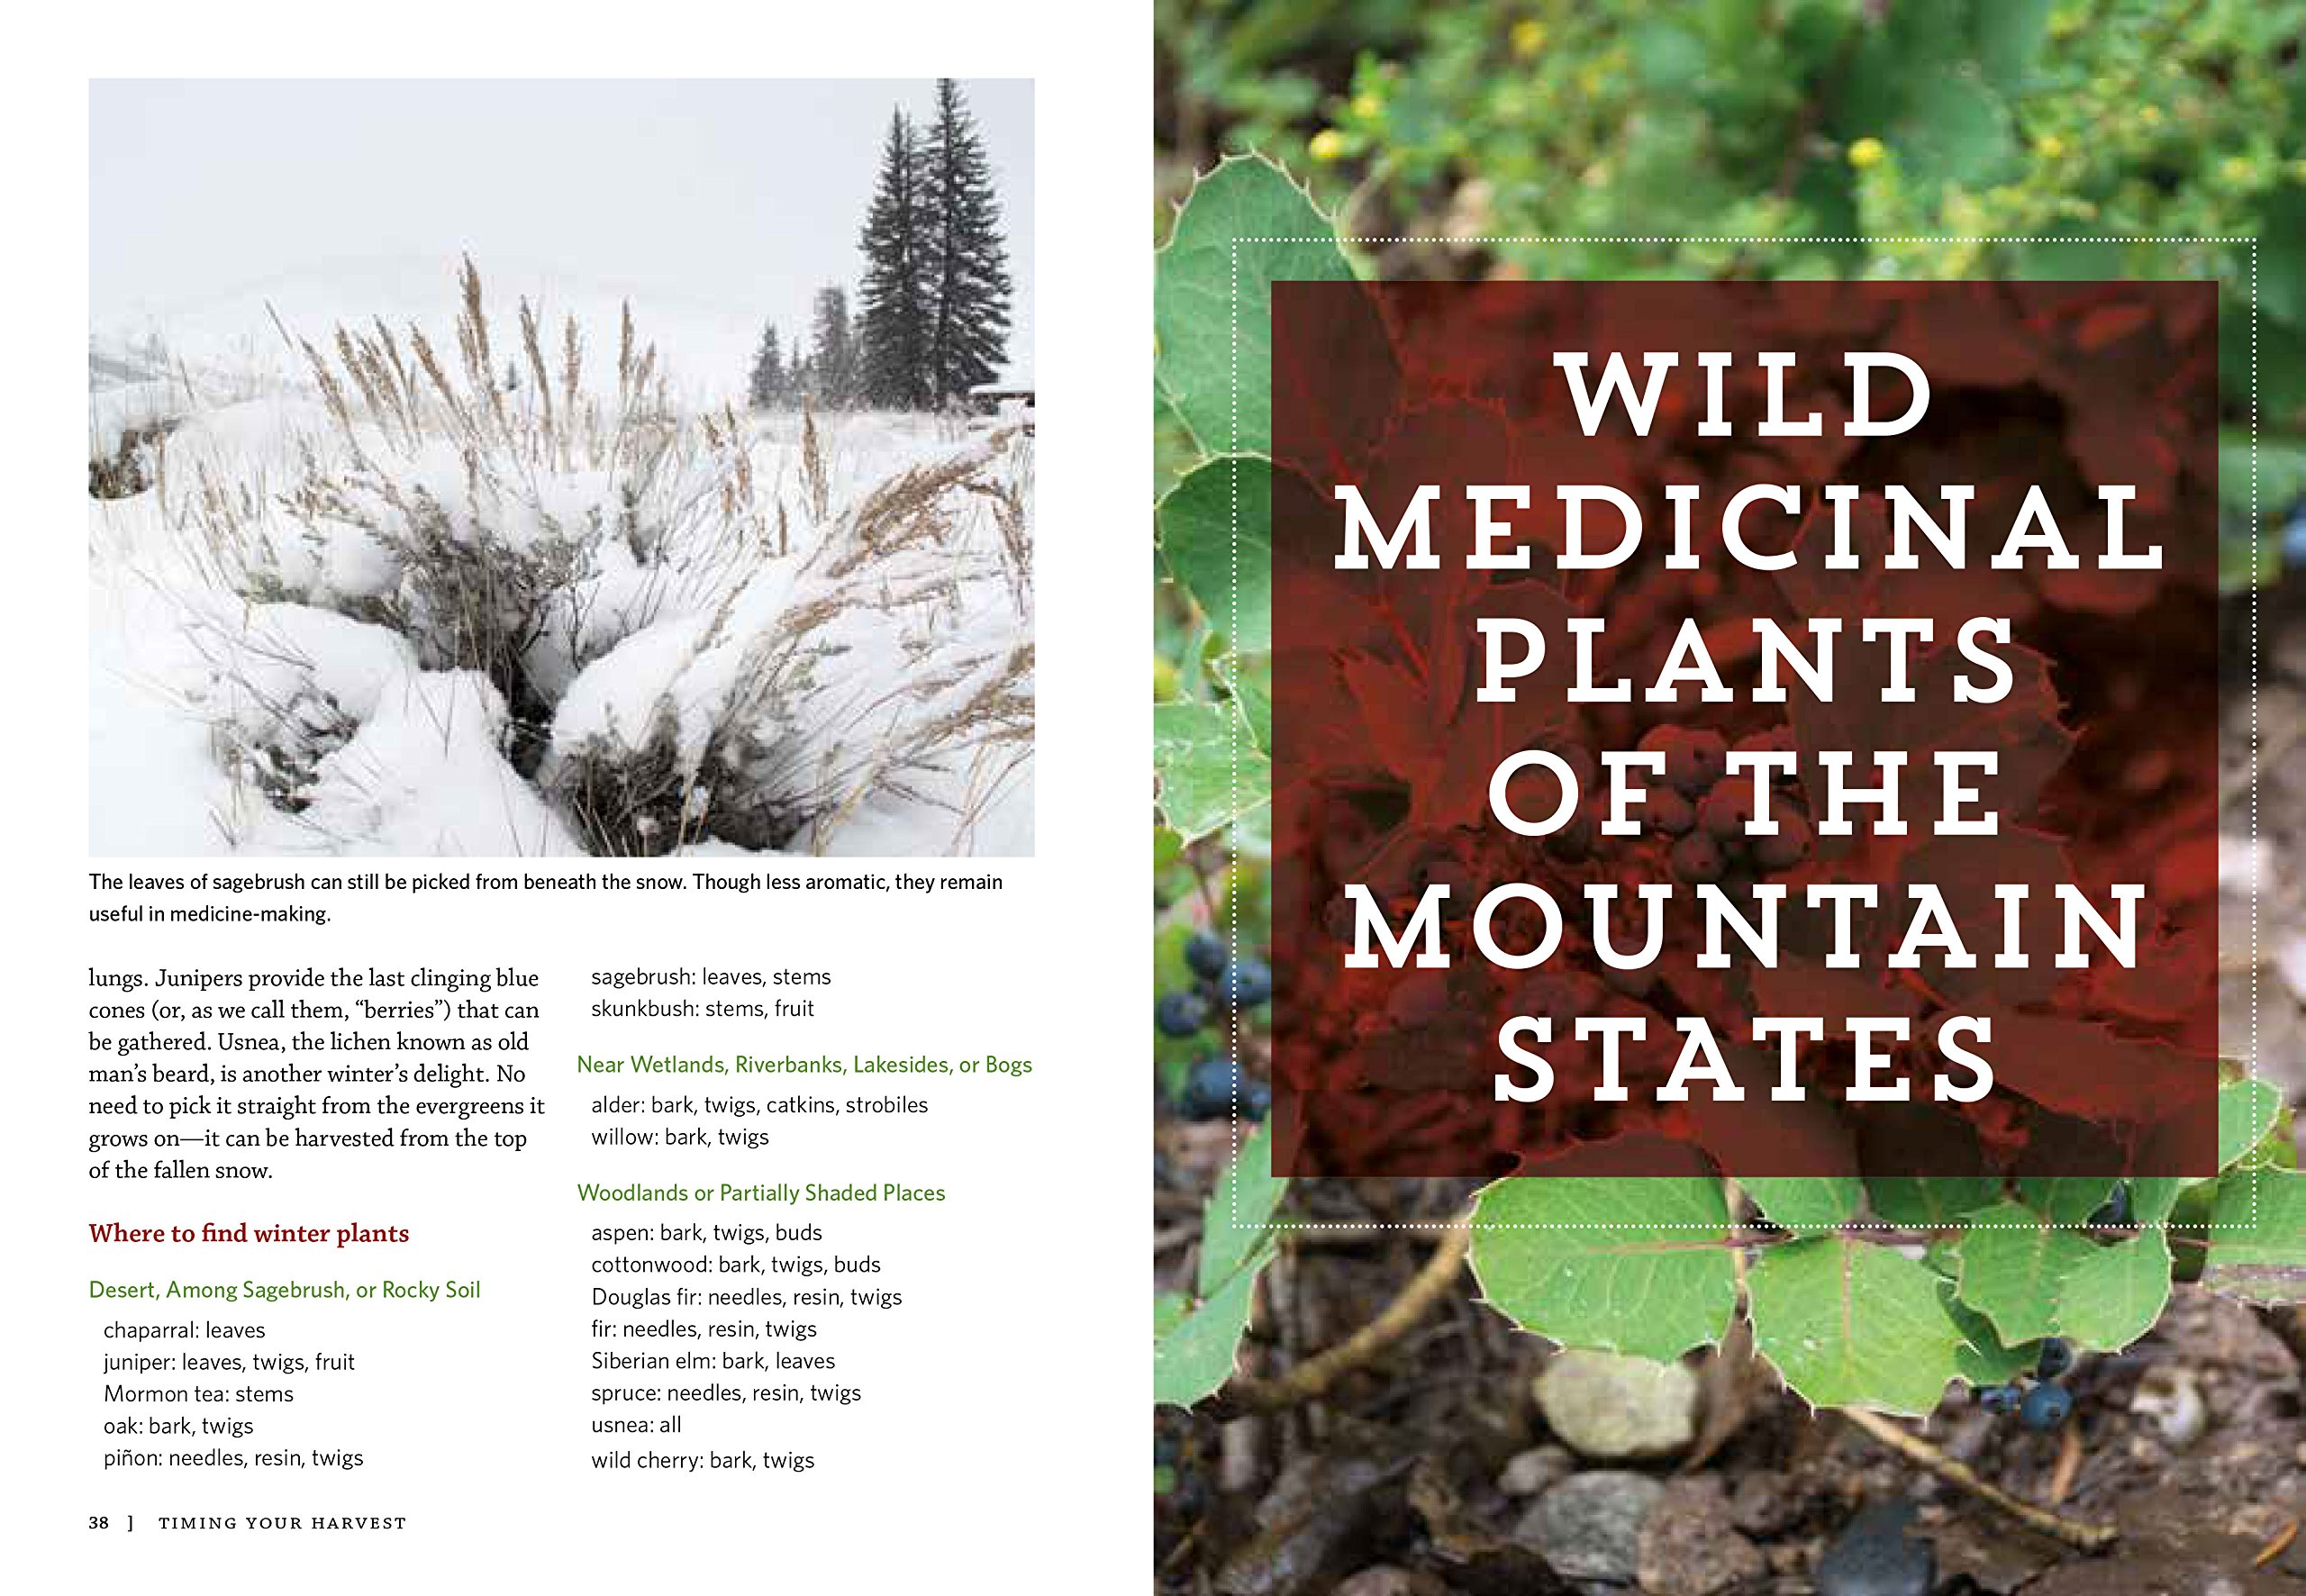 Mountain states medicinal plants identify harvest and use 100 mountain states medicinal plants identify harvest and use 100 wild herbs for health and wellness briana wiles 9781604696547 amazon books fandeluxe Image collections